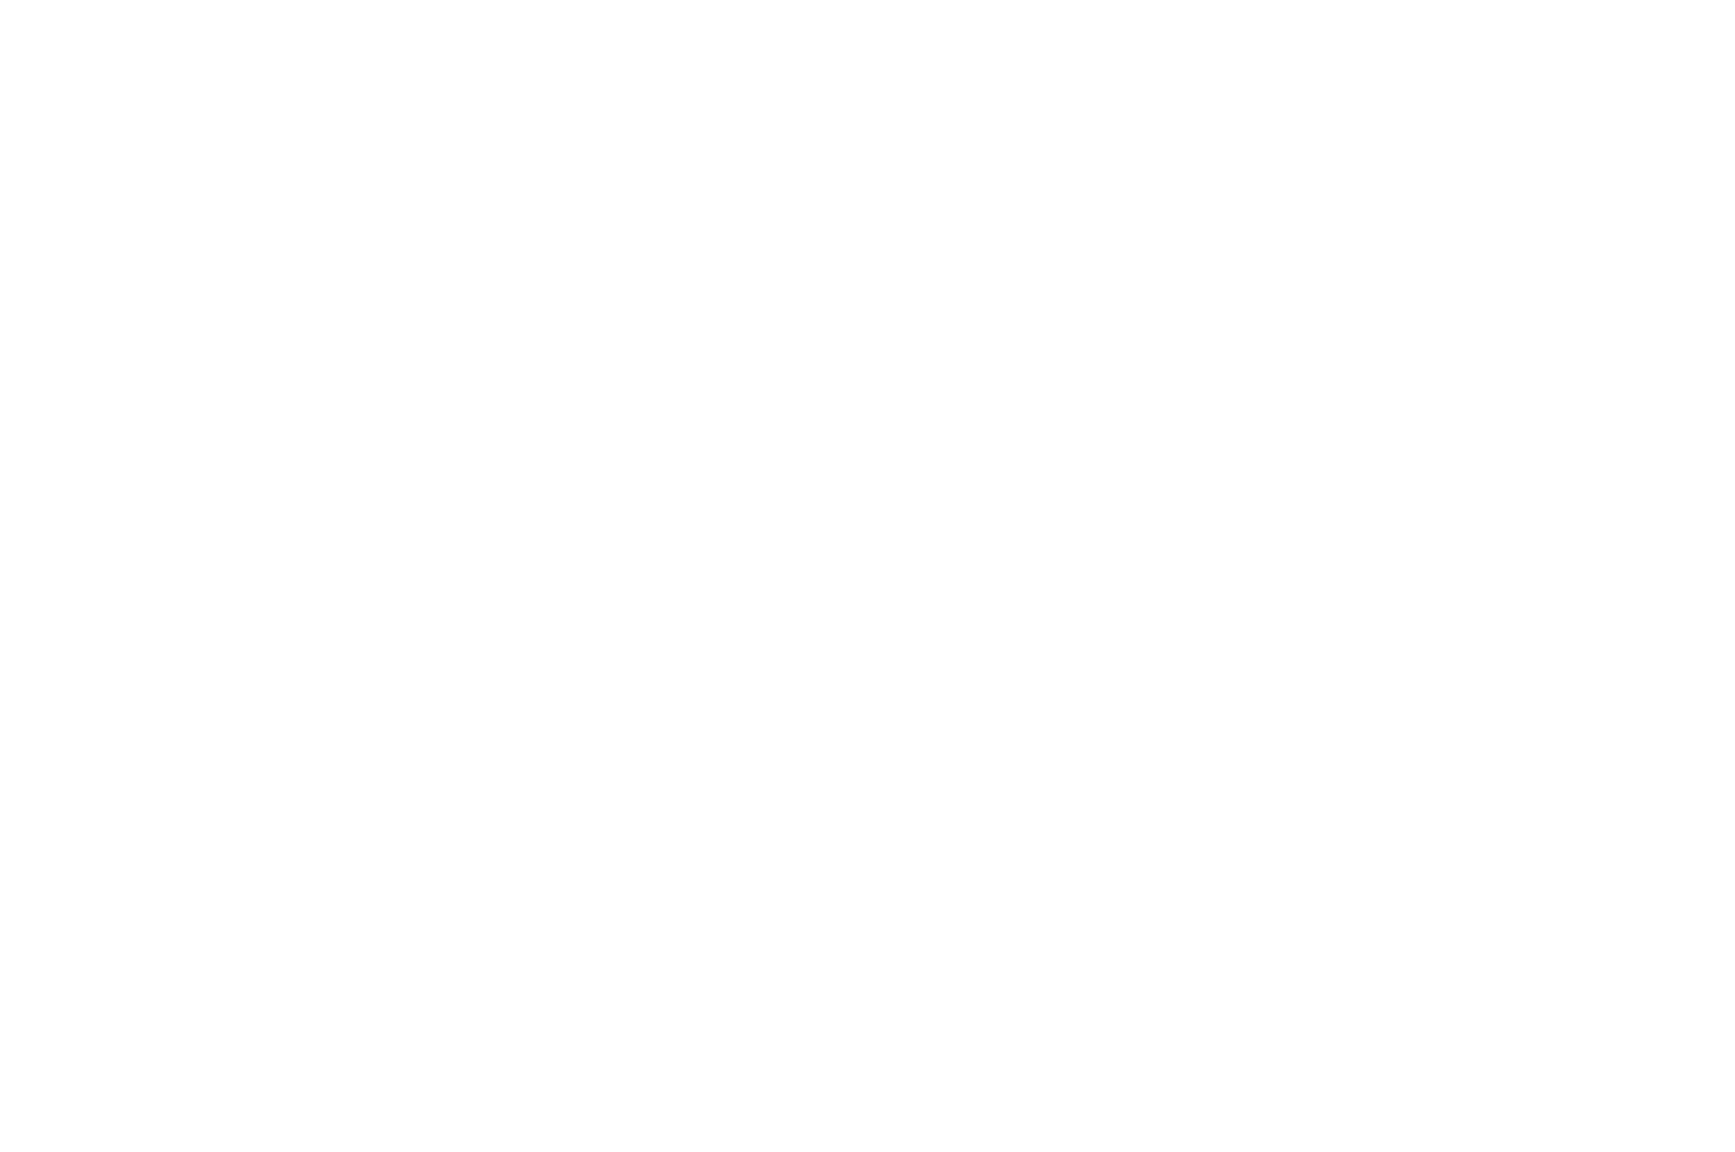 whiteBEST WRITER NOMINEE - Yh Mourhia Wright - GLOW Television  Web Series Festival.png